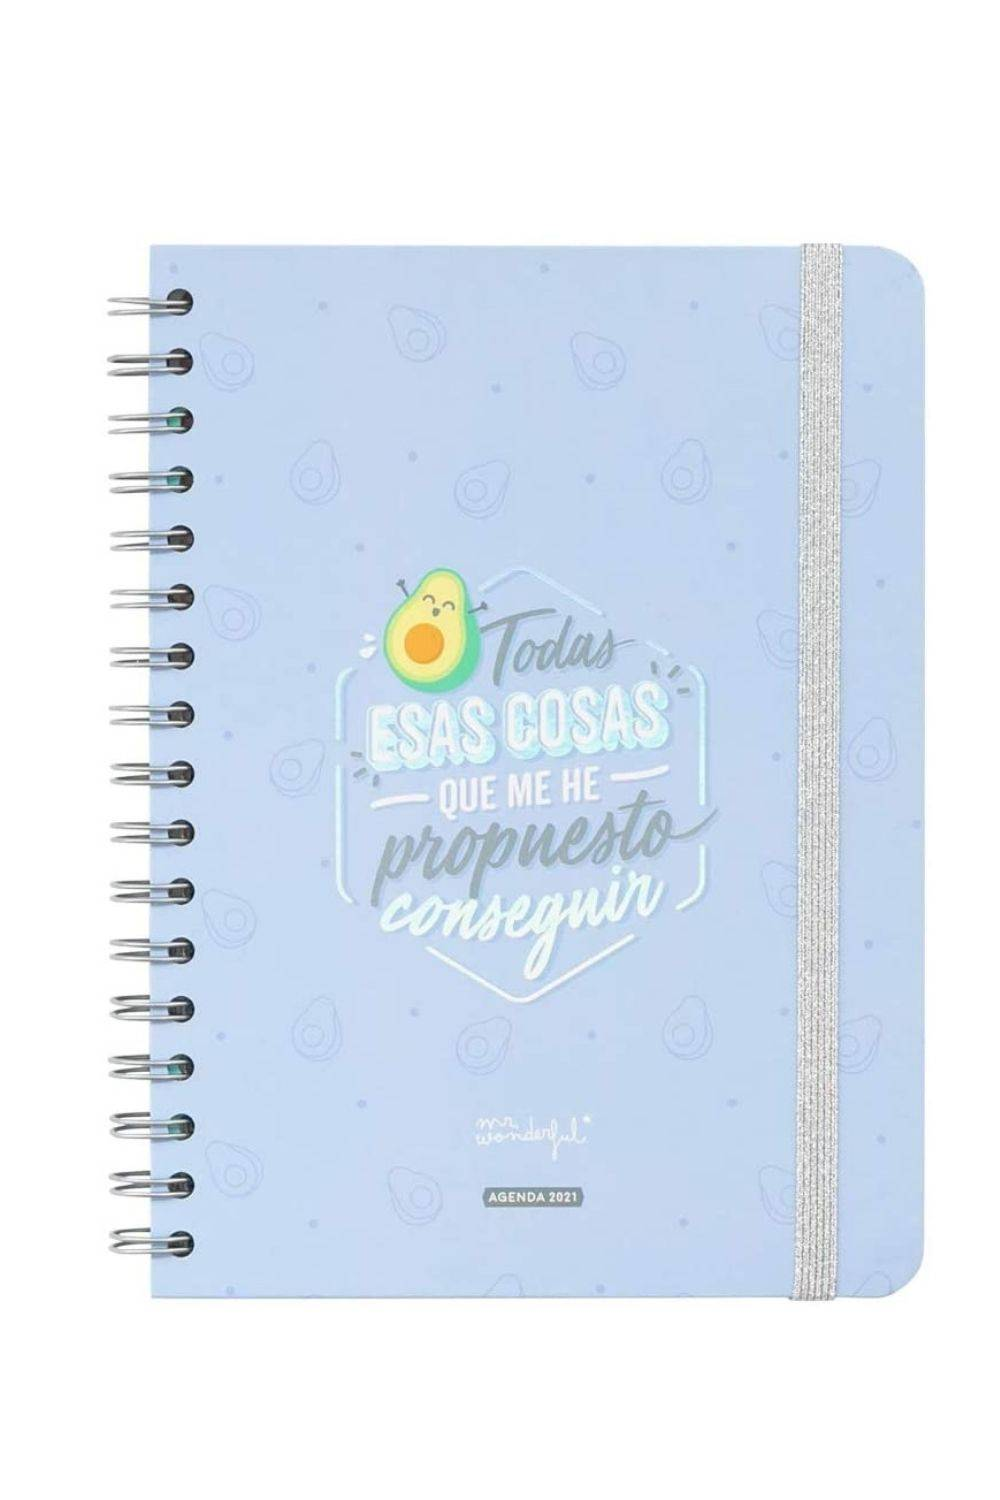 Agenda de Mr Wonderfull